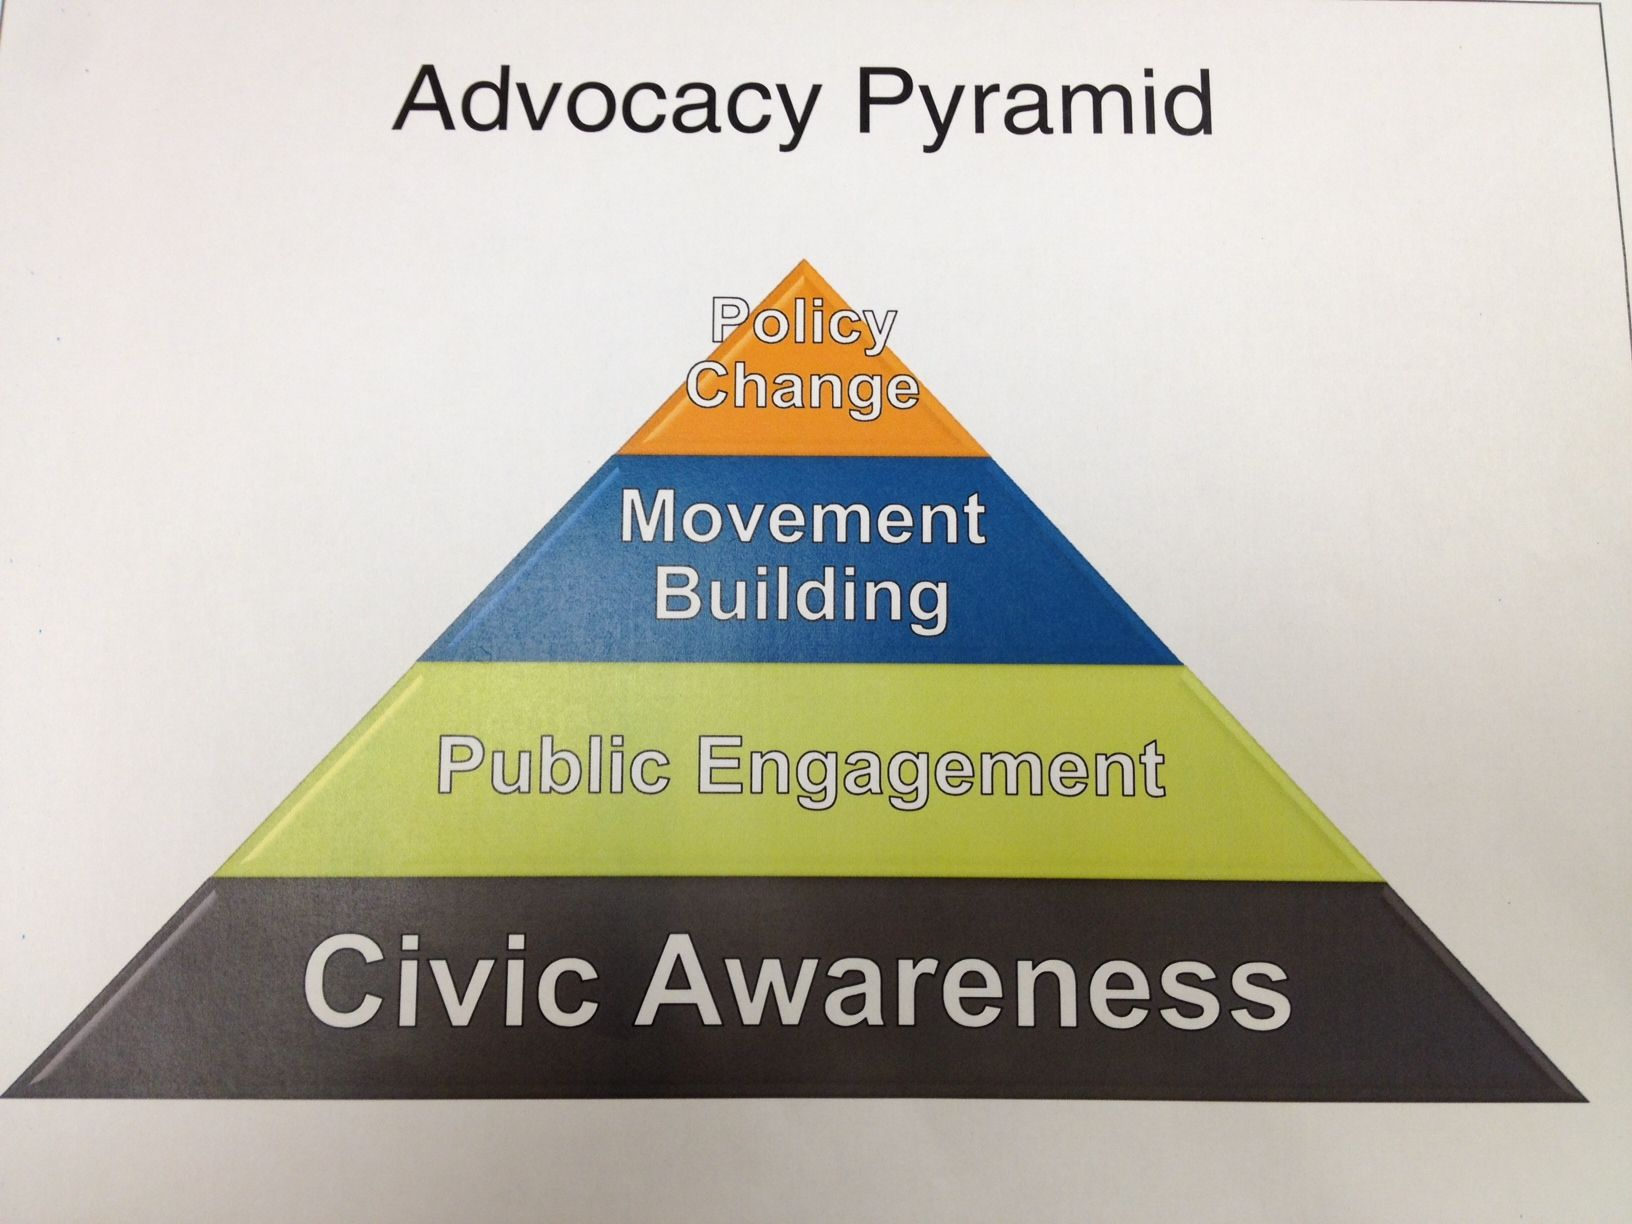 An advocacy pyramid model used by the Gates Foundation